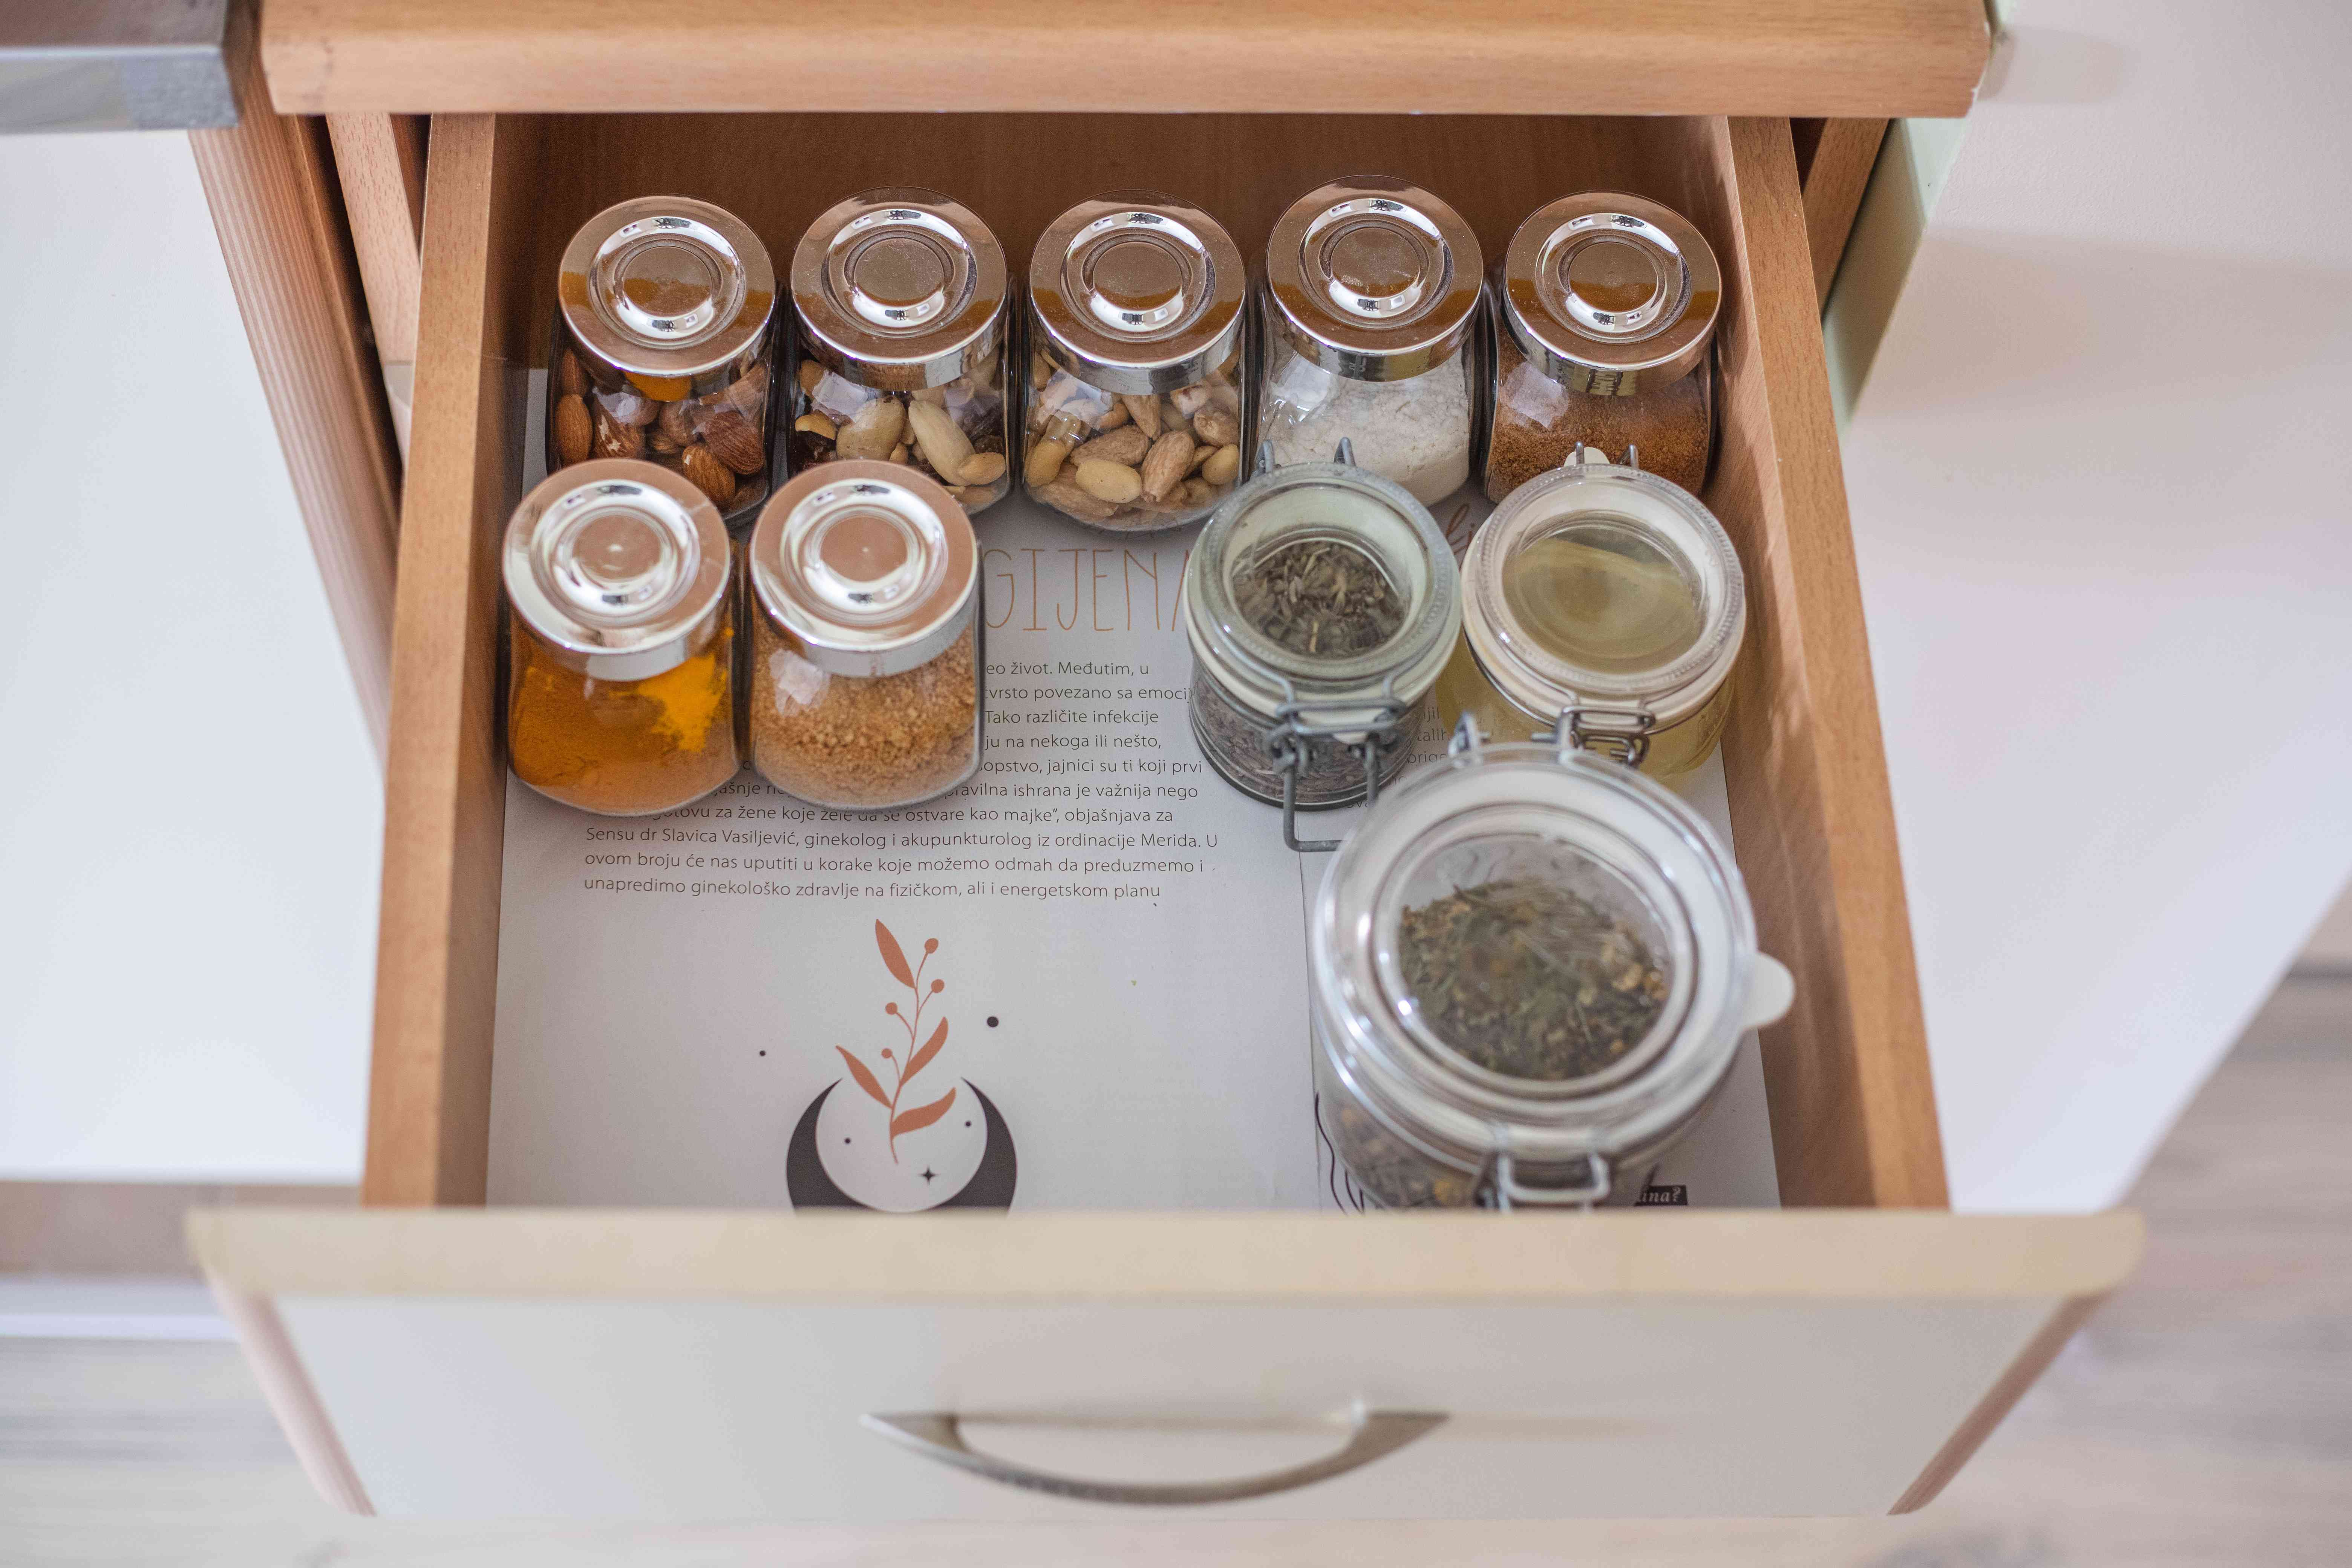 kitchen spice drawer pulled out to show magazine paper used as lining